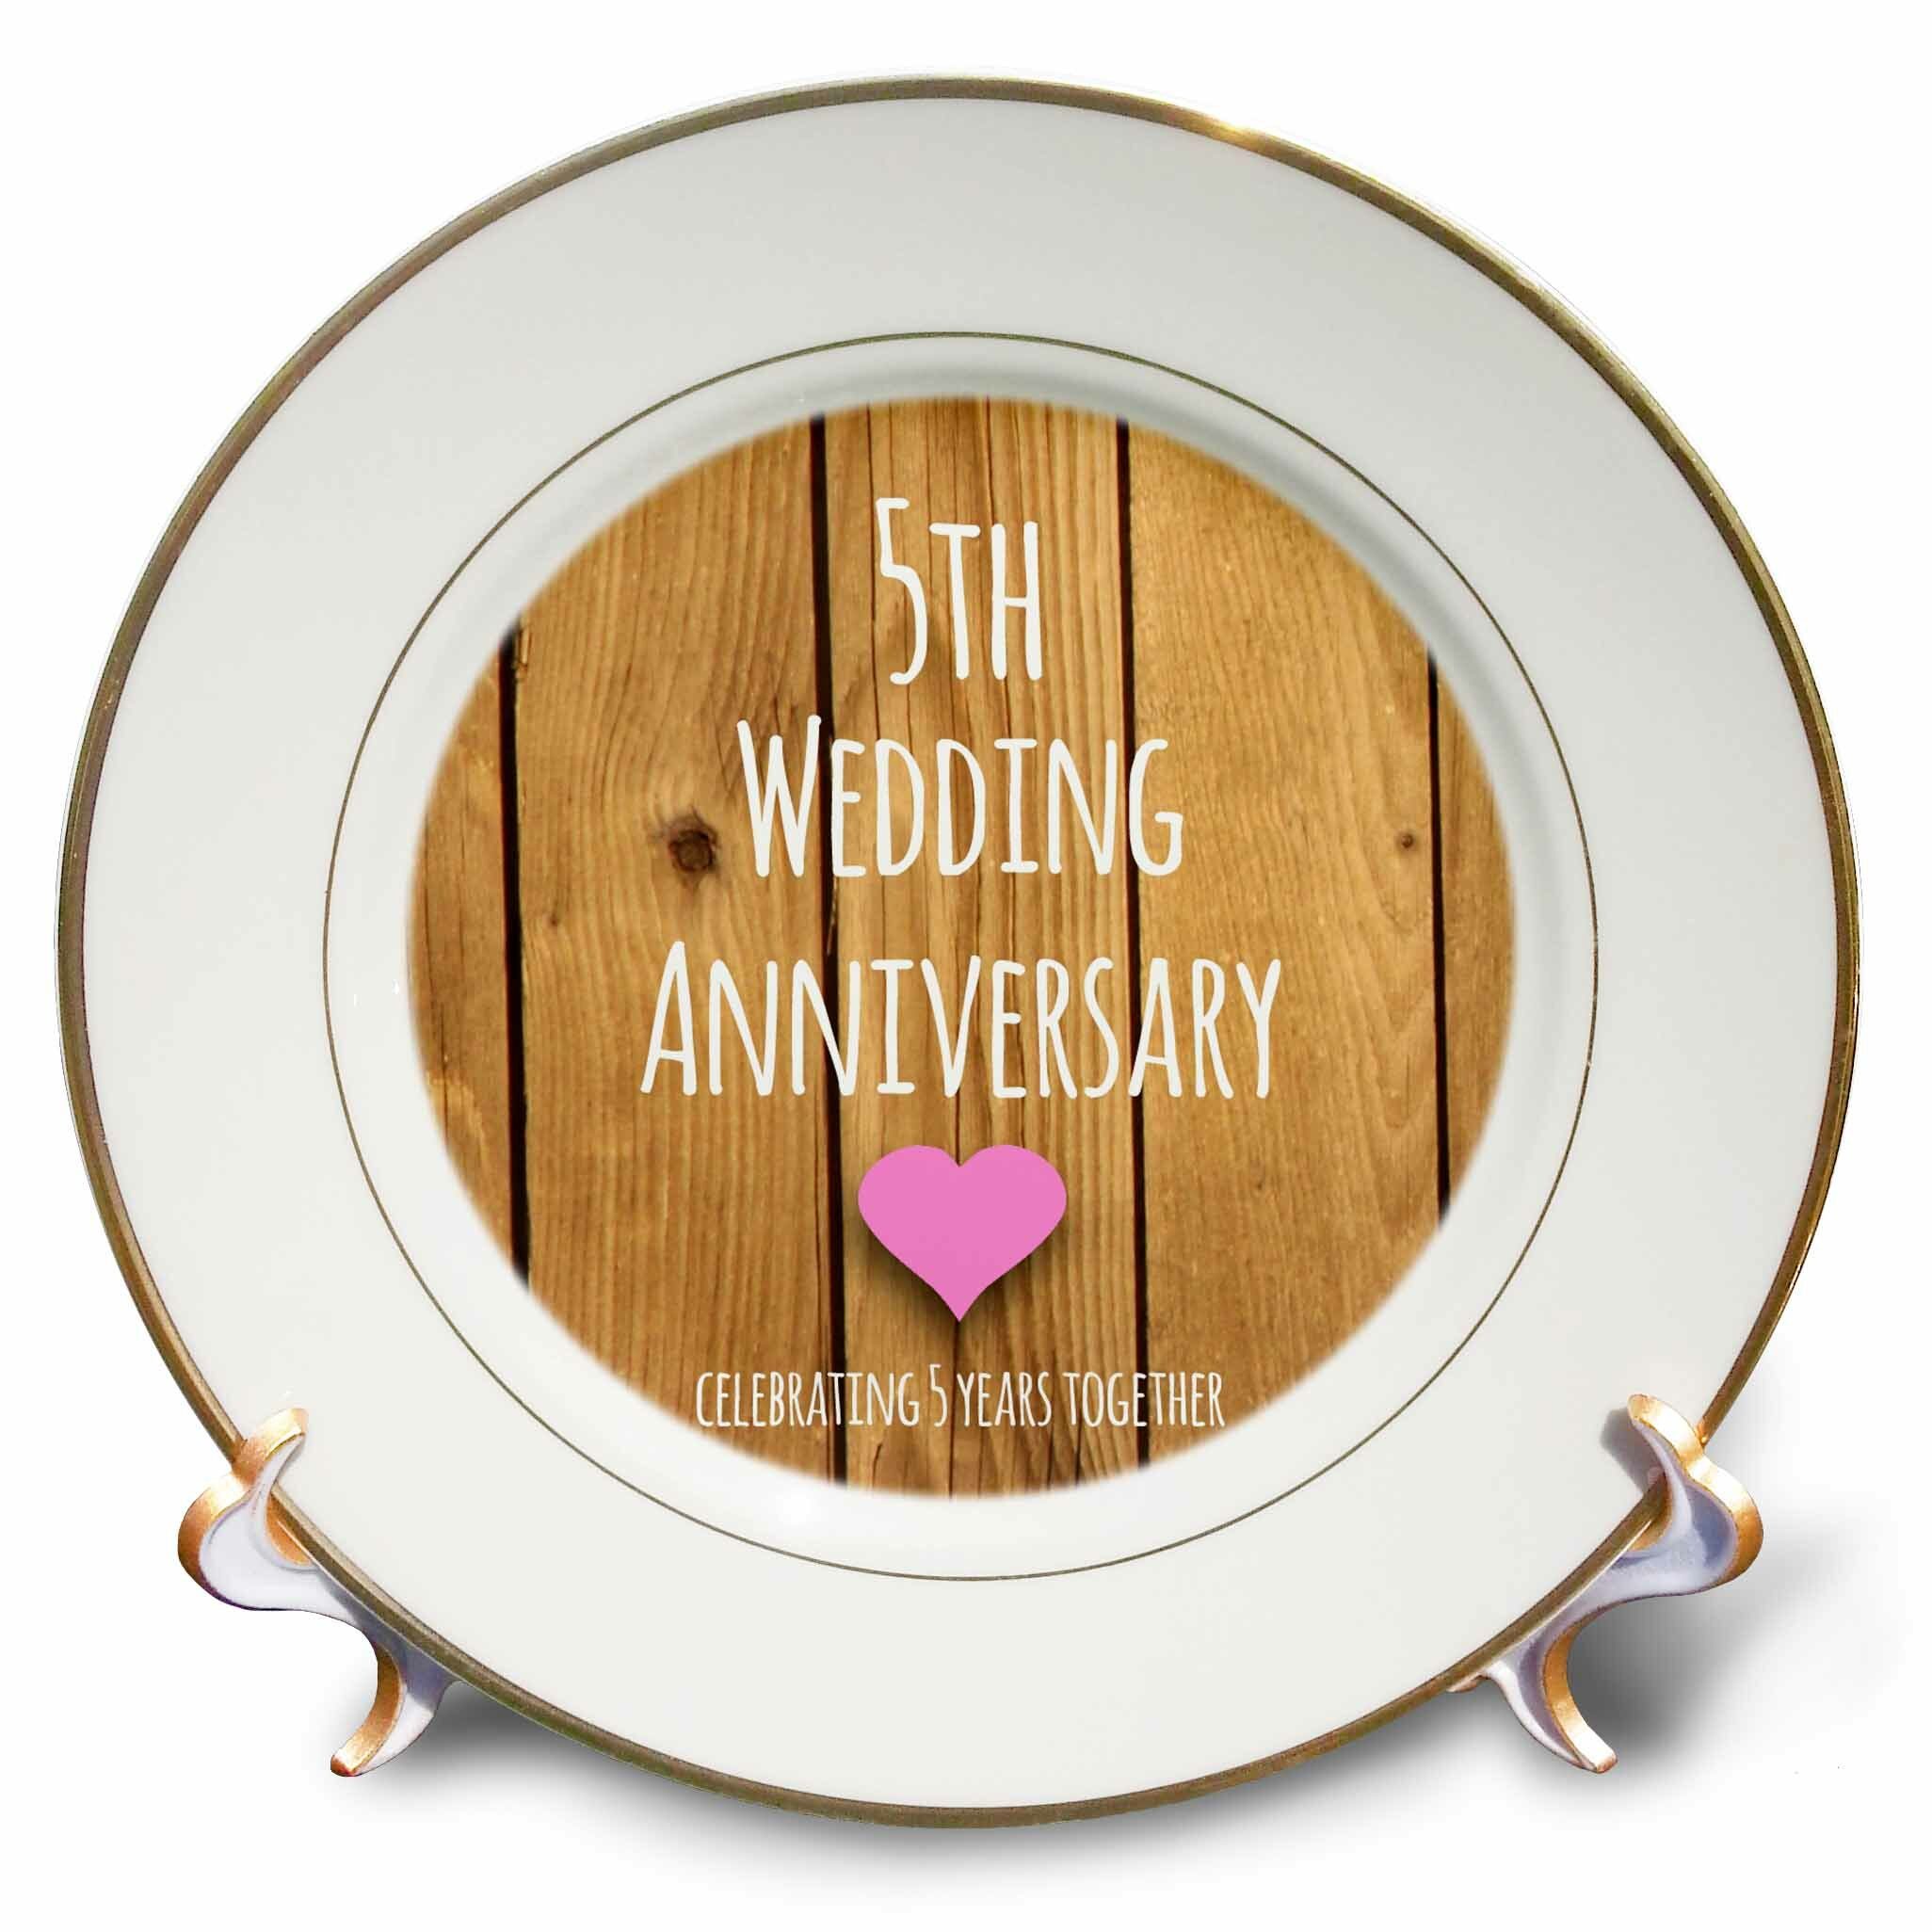 East Urban Home 5th Wedding Anniversary Gift Wood Celebrating 5 Years Together Fifth Anniversaries Porcelain Decorative Plate Wayfair